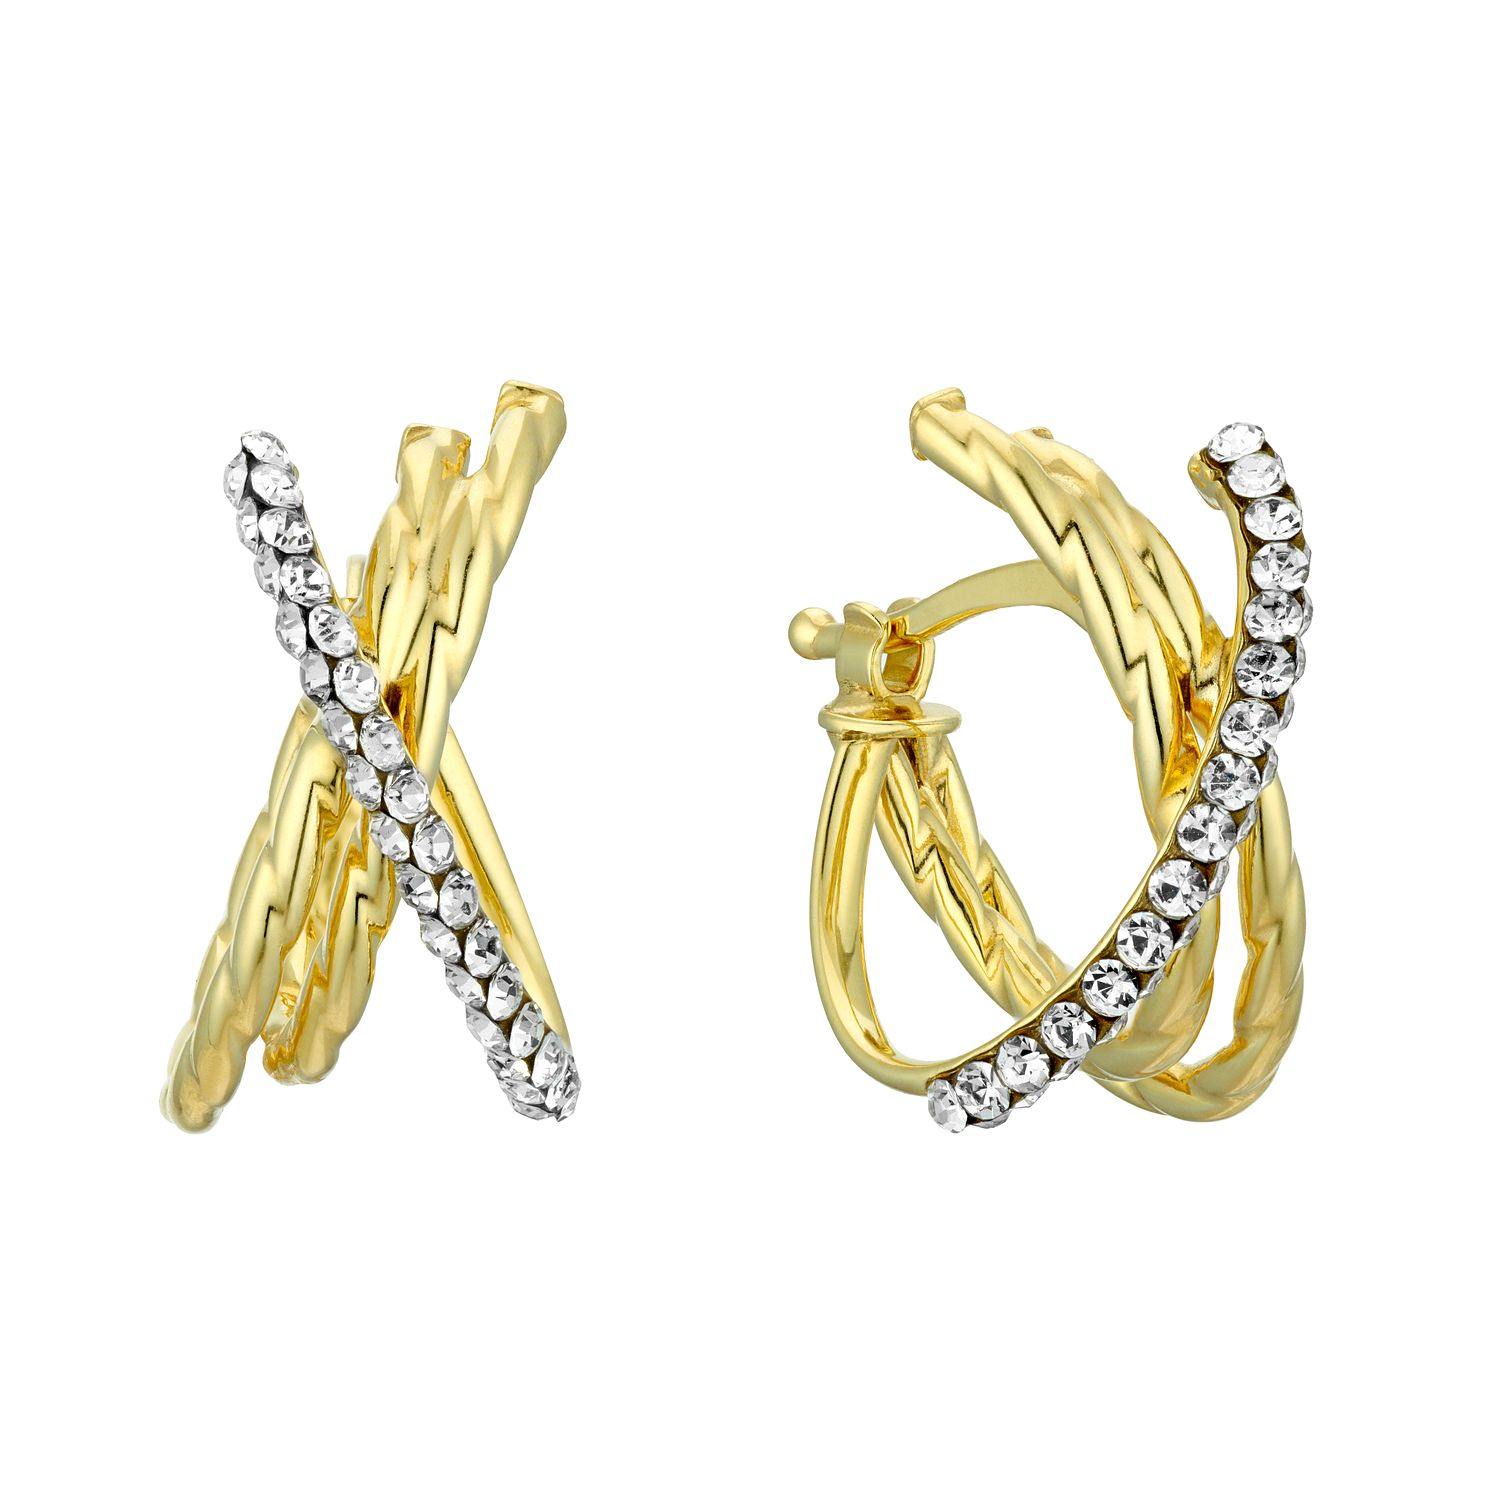 9ct Yellow Gold Swarovski Crystal Crossover Hoop Earrings - Product number 4667859